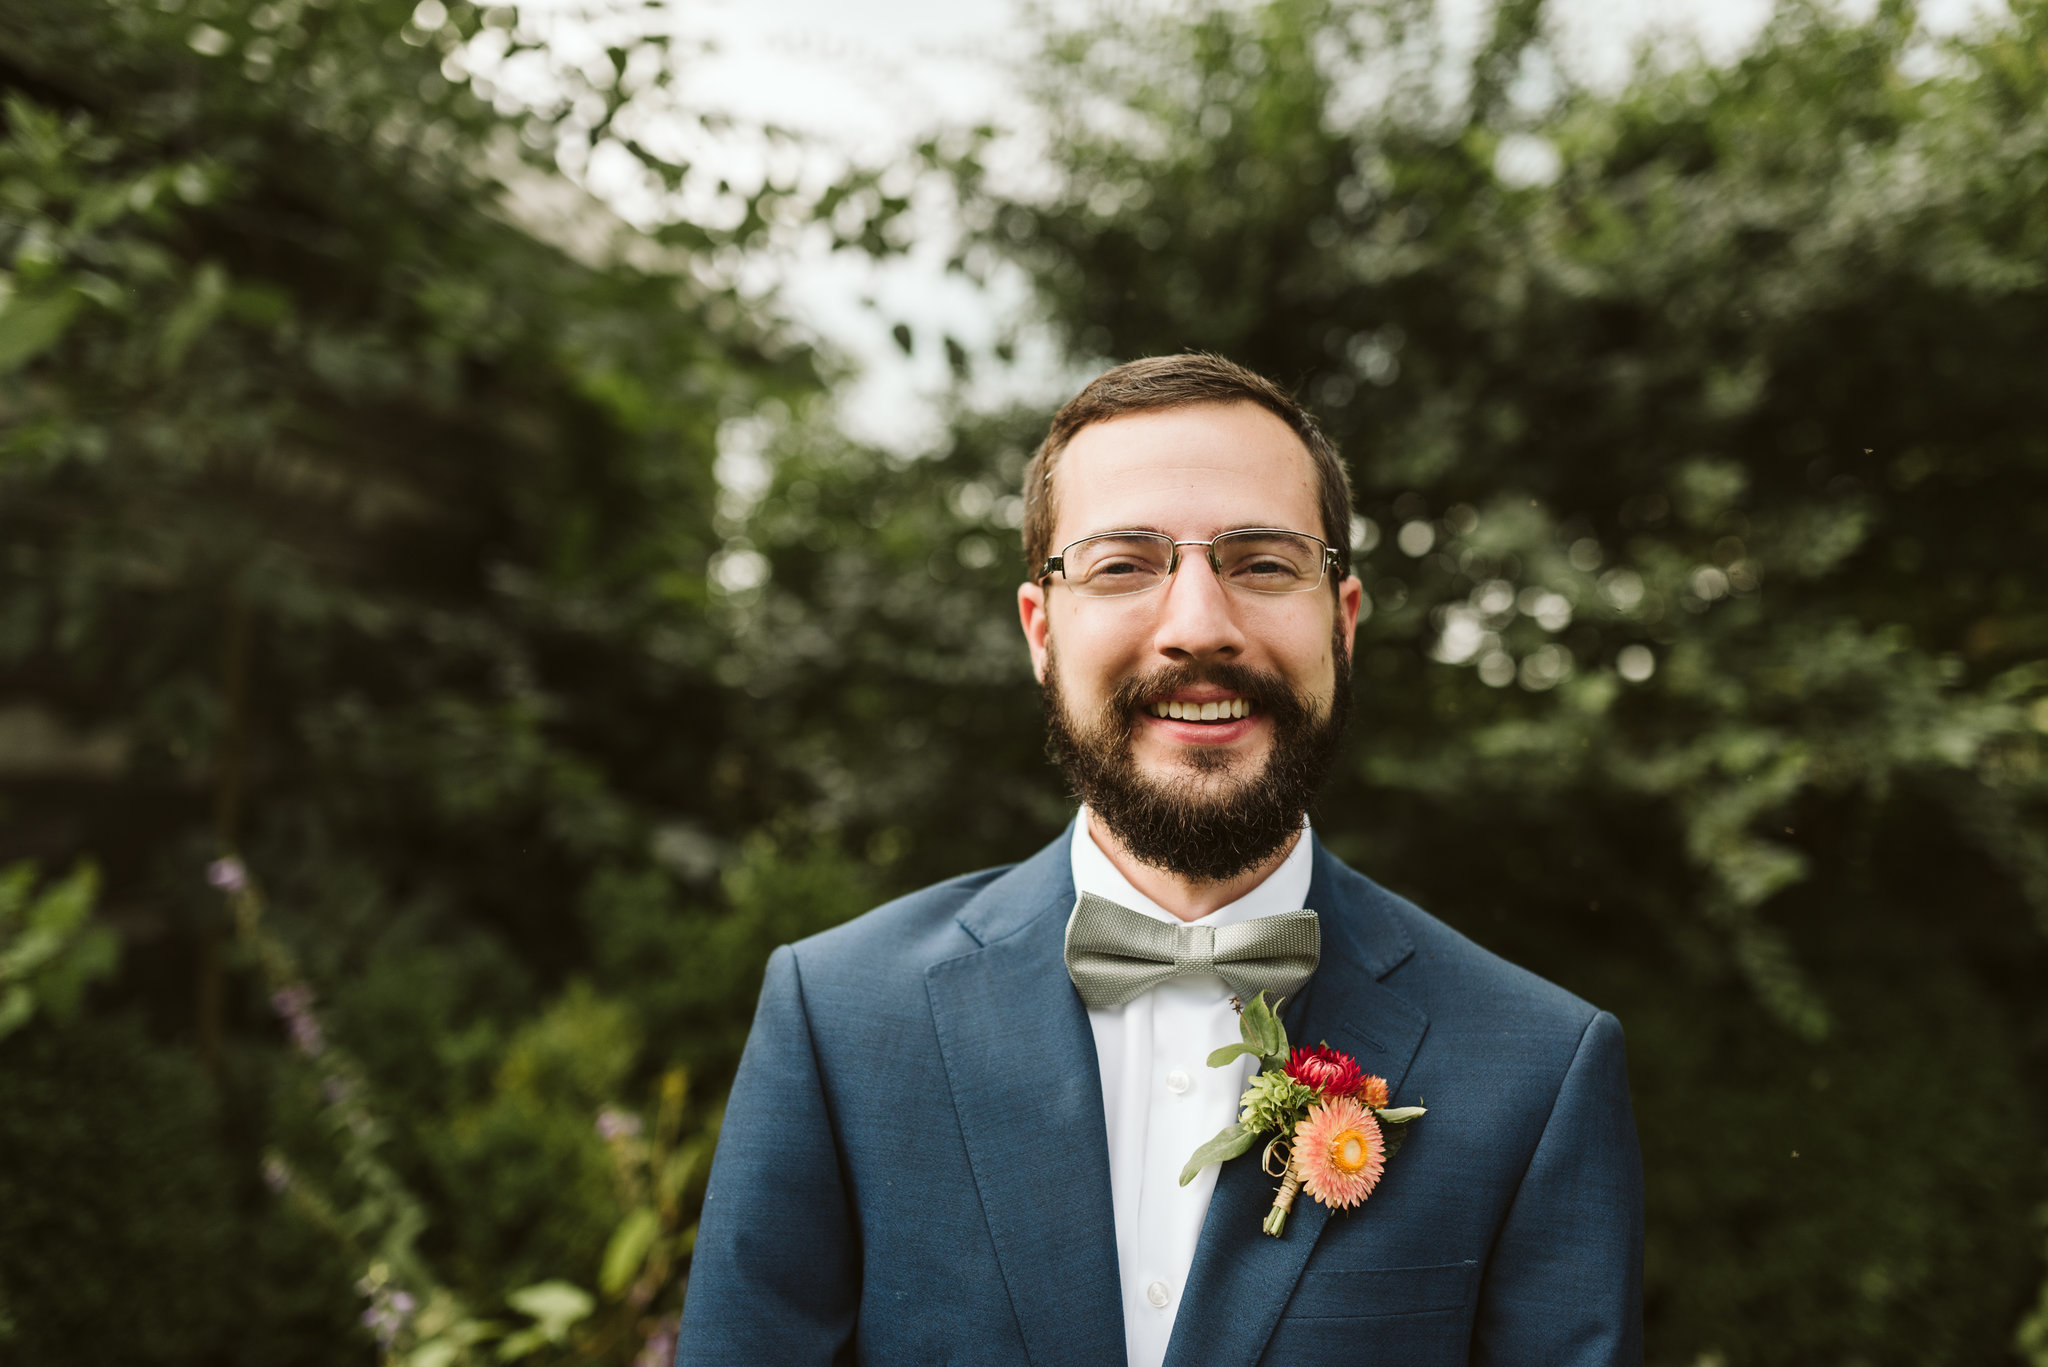 Rocklands Farm, Maryland, Intimate Wedding, Baltimore Wedding Photographer, Sungold Flower Co, Rustic, Romantic, Barn Wedding, Portrait of Groom Smiling Before Ceremony